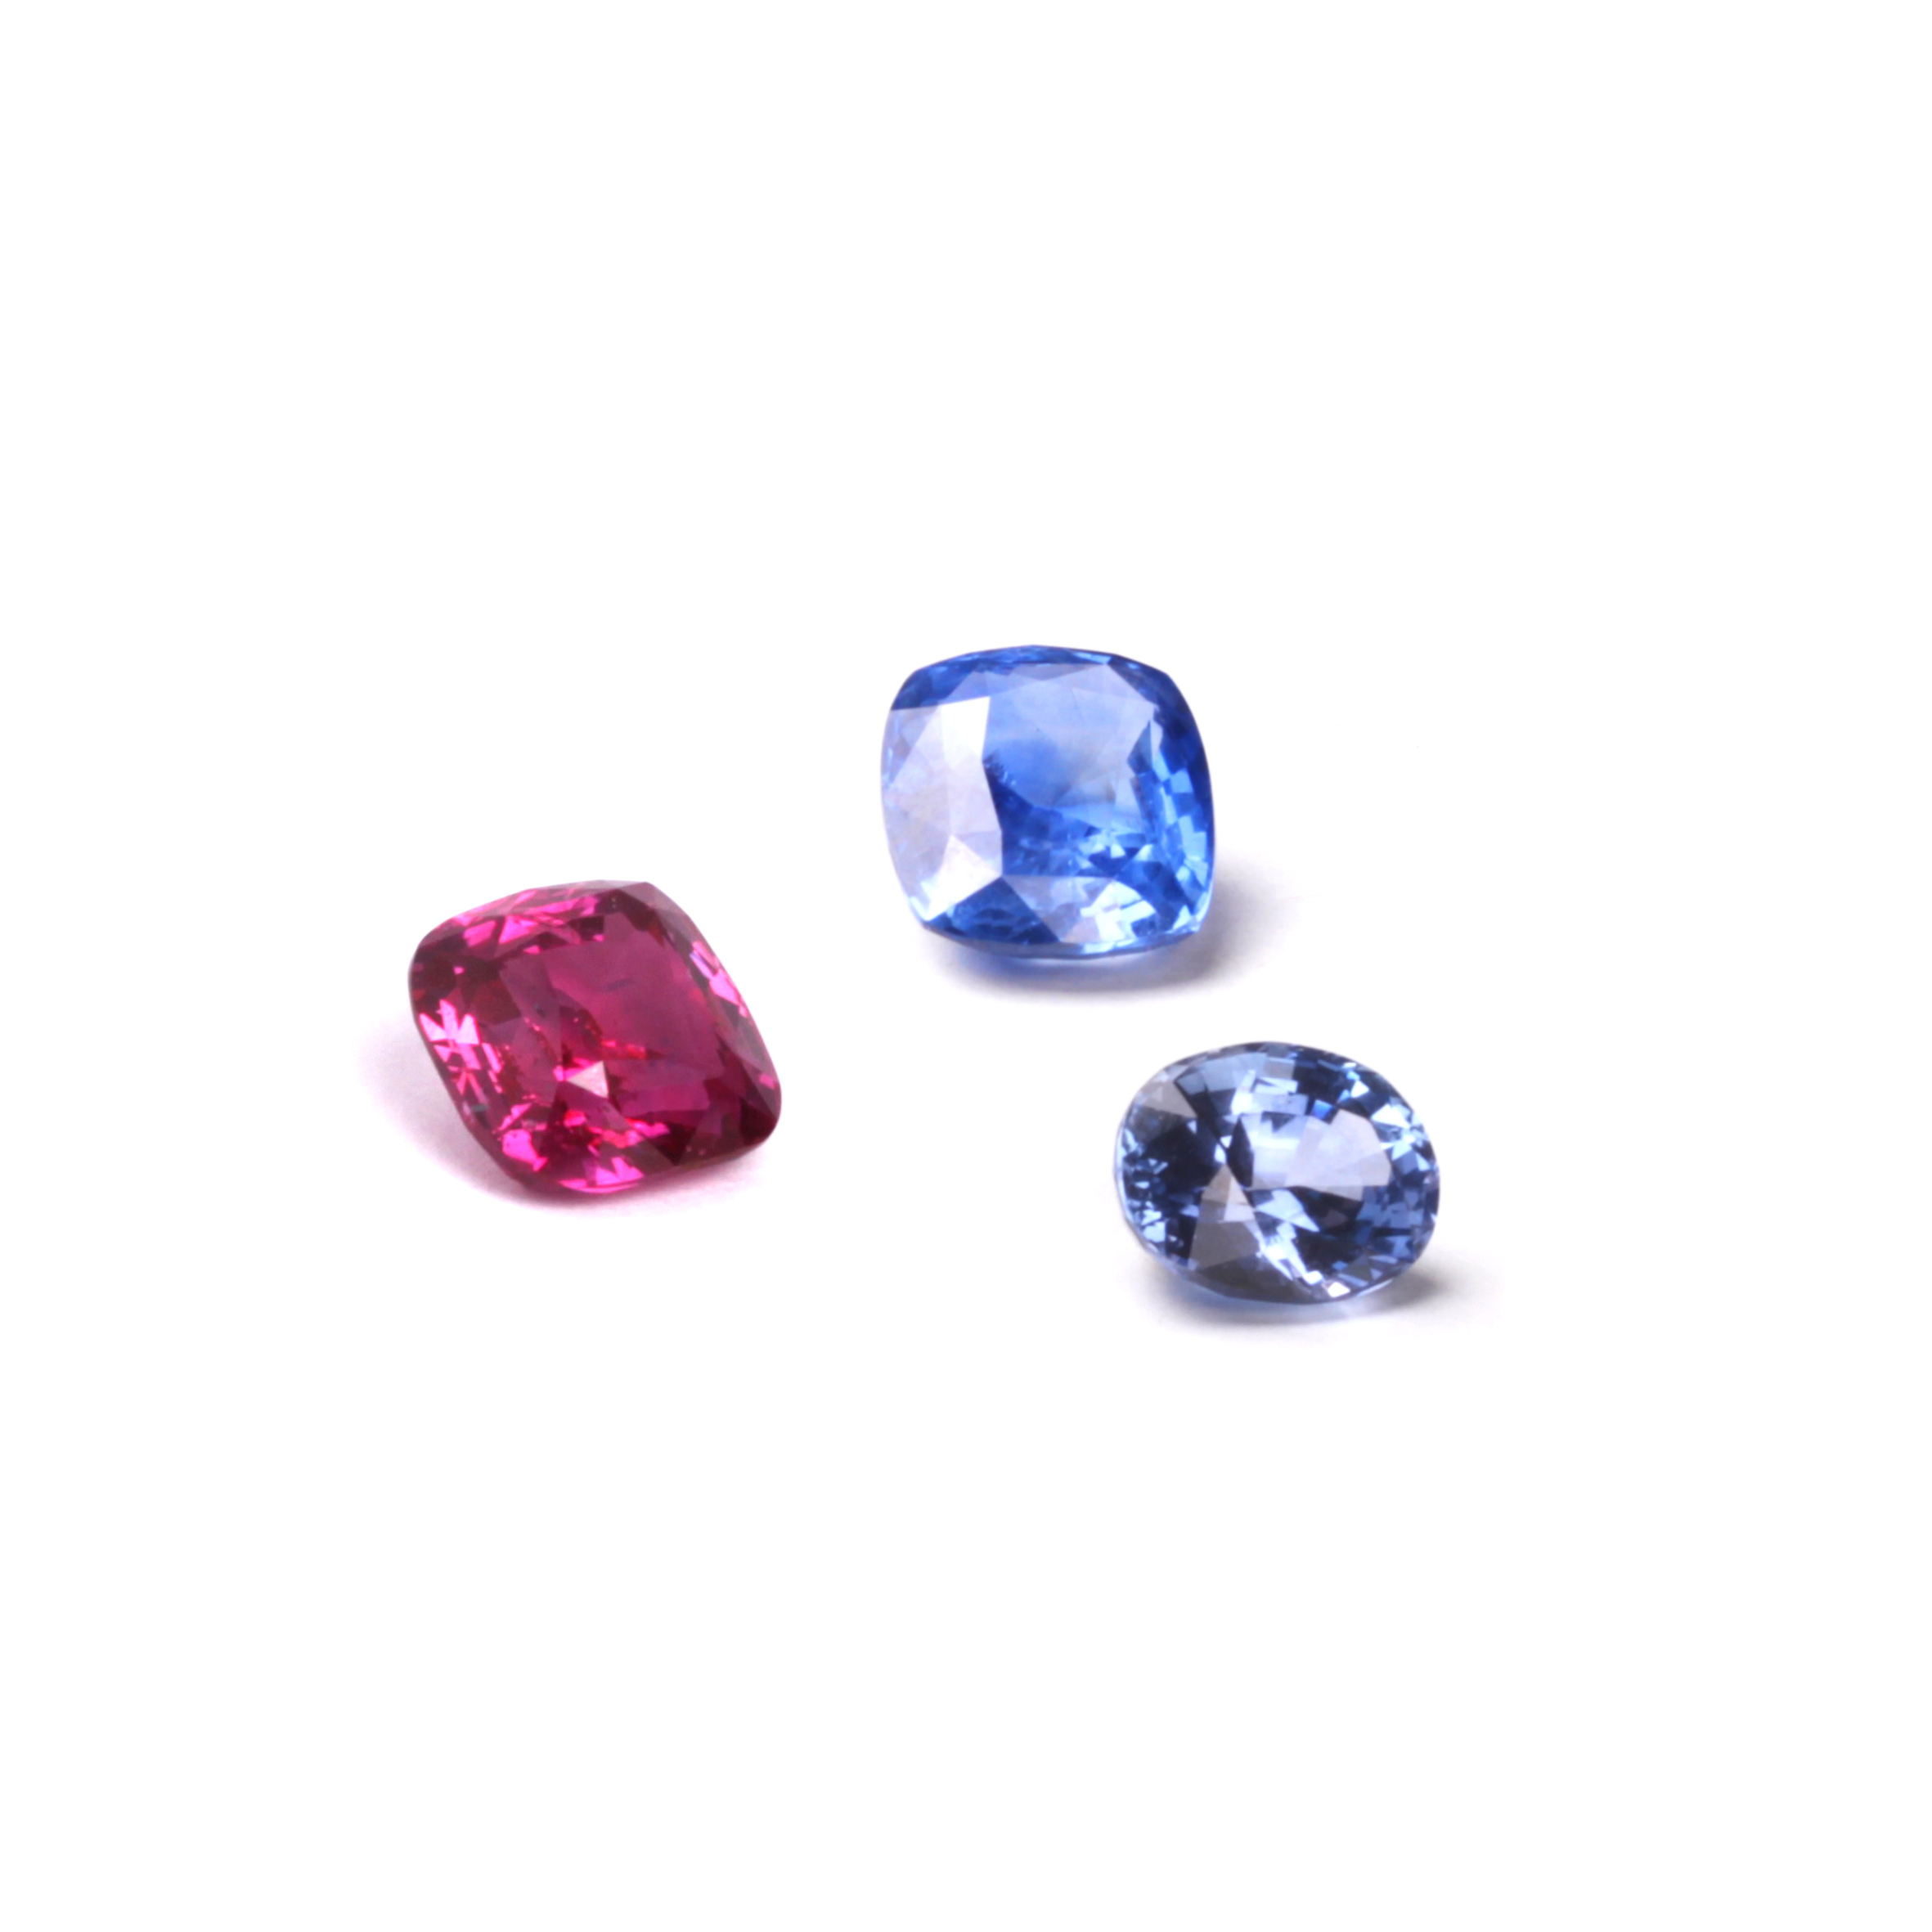 ceylon-natural-coloured-unheated-untreated-sapphires-sri-lanka-gemstones.jpg